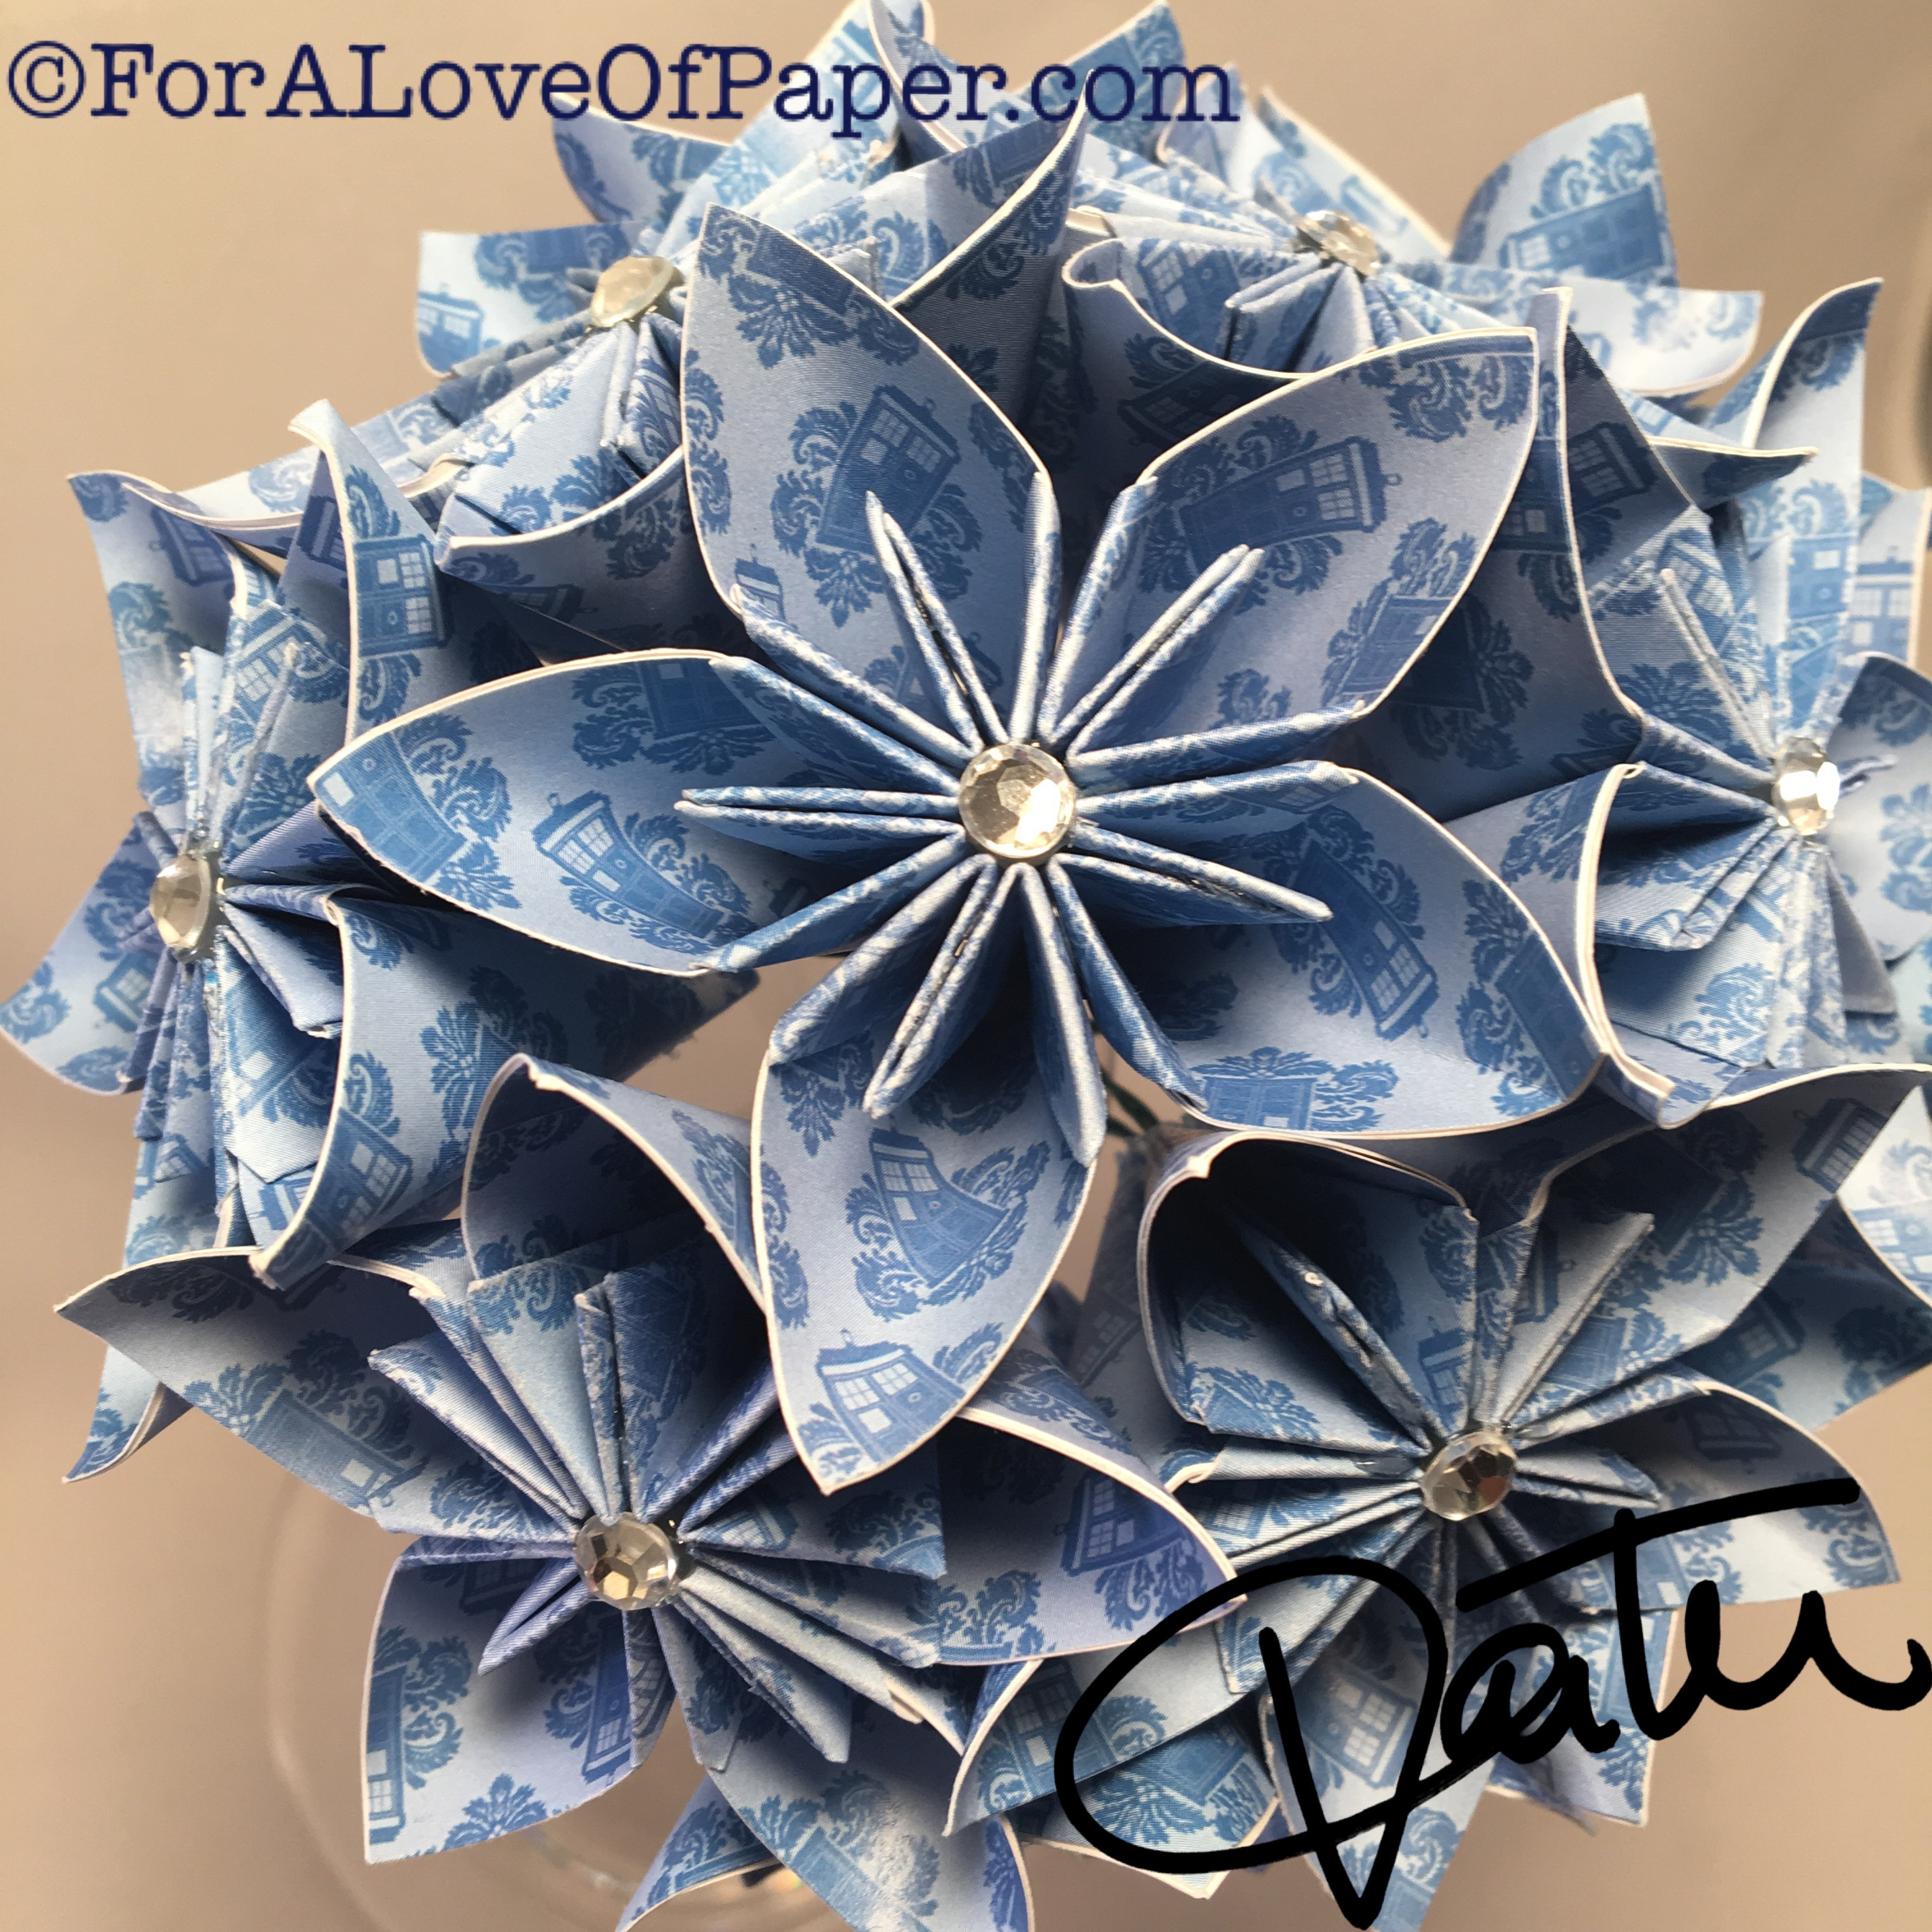 Paper flower bouquet made from TARDIS print paper